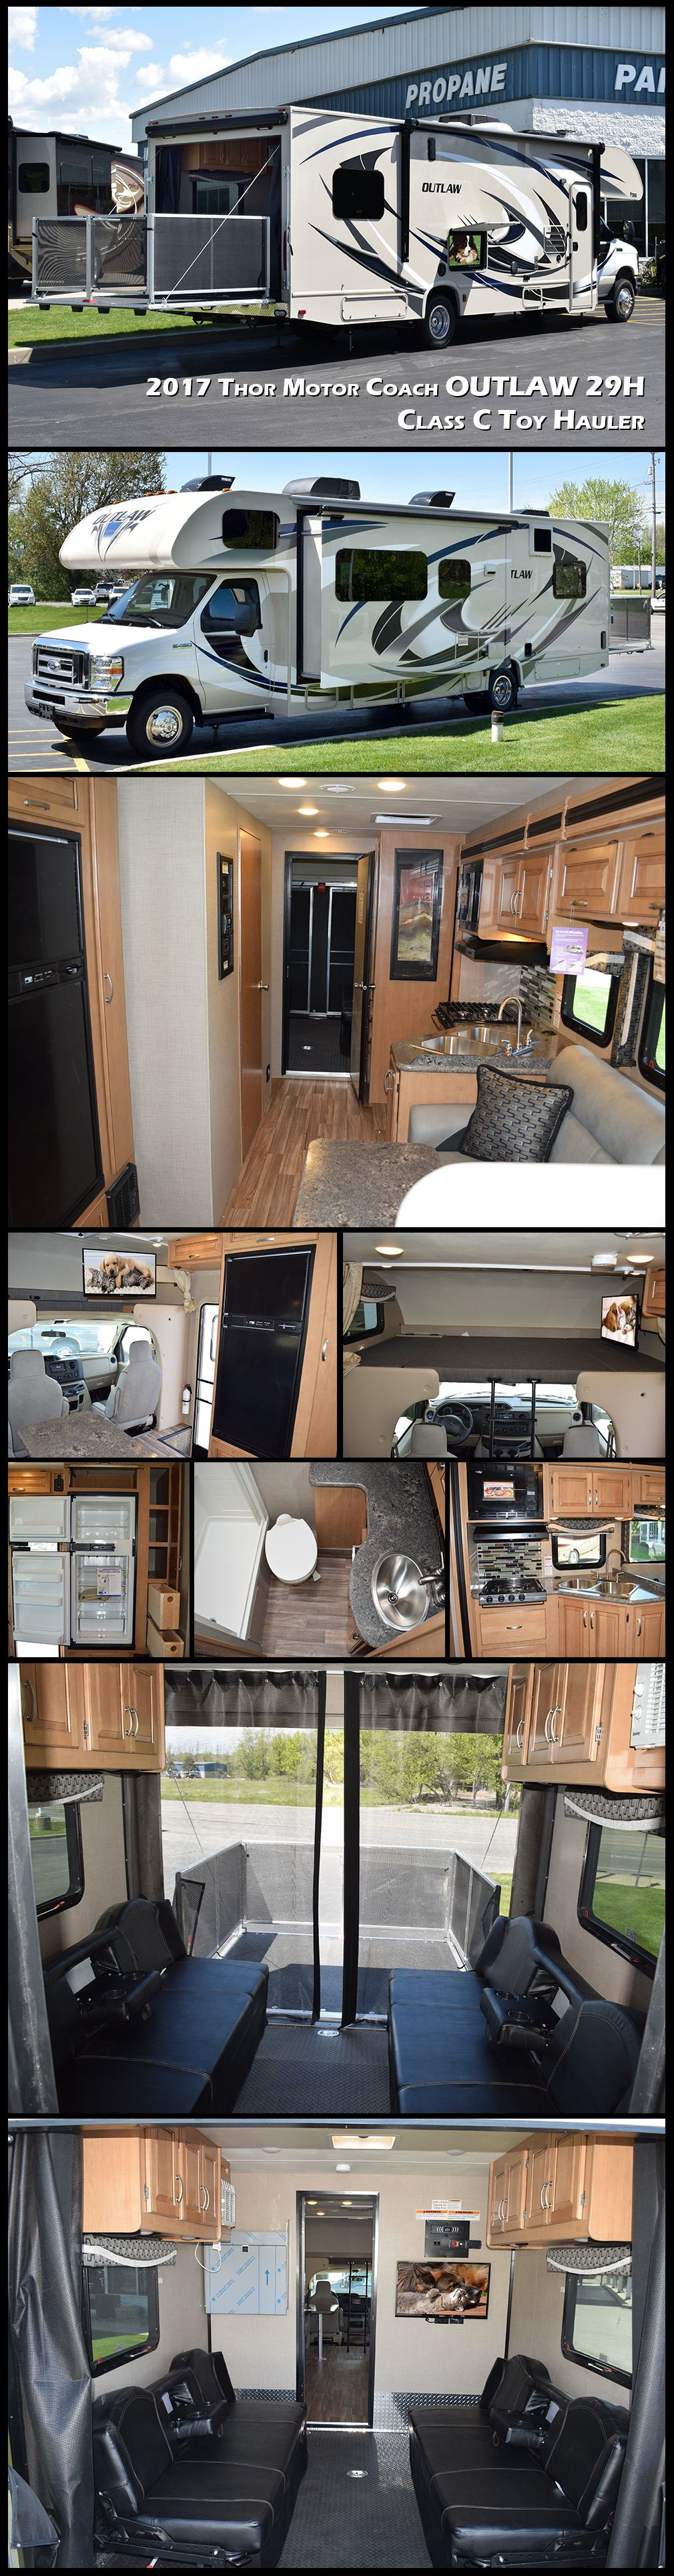 Super c duramax motorhome and toyhauler combo called a fun mover best of both worlds unusual rvs caravans motorhomes pinterest motorhome and